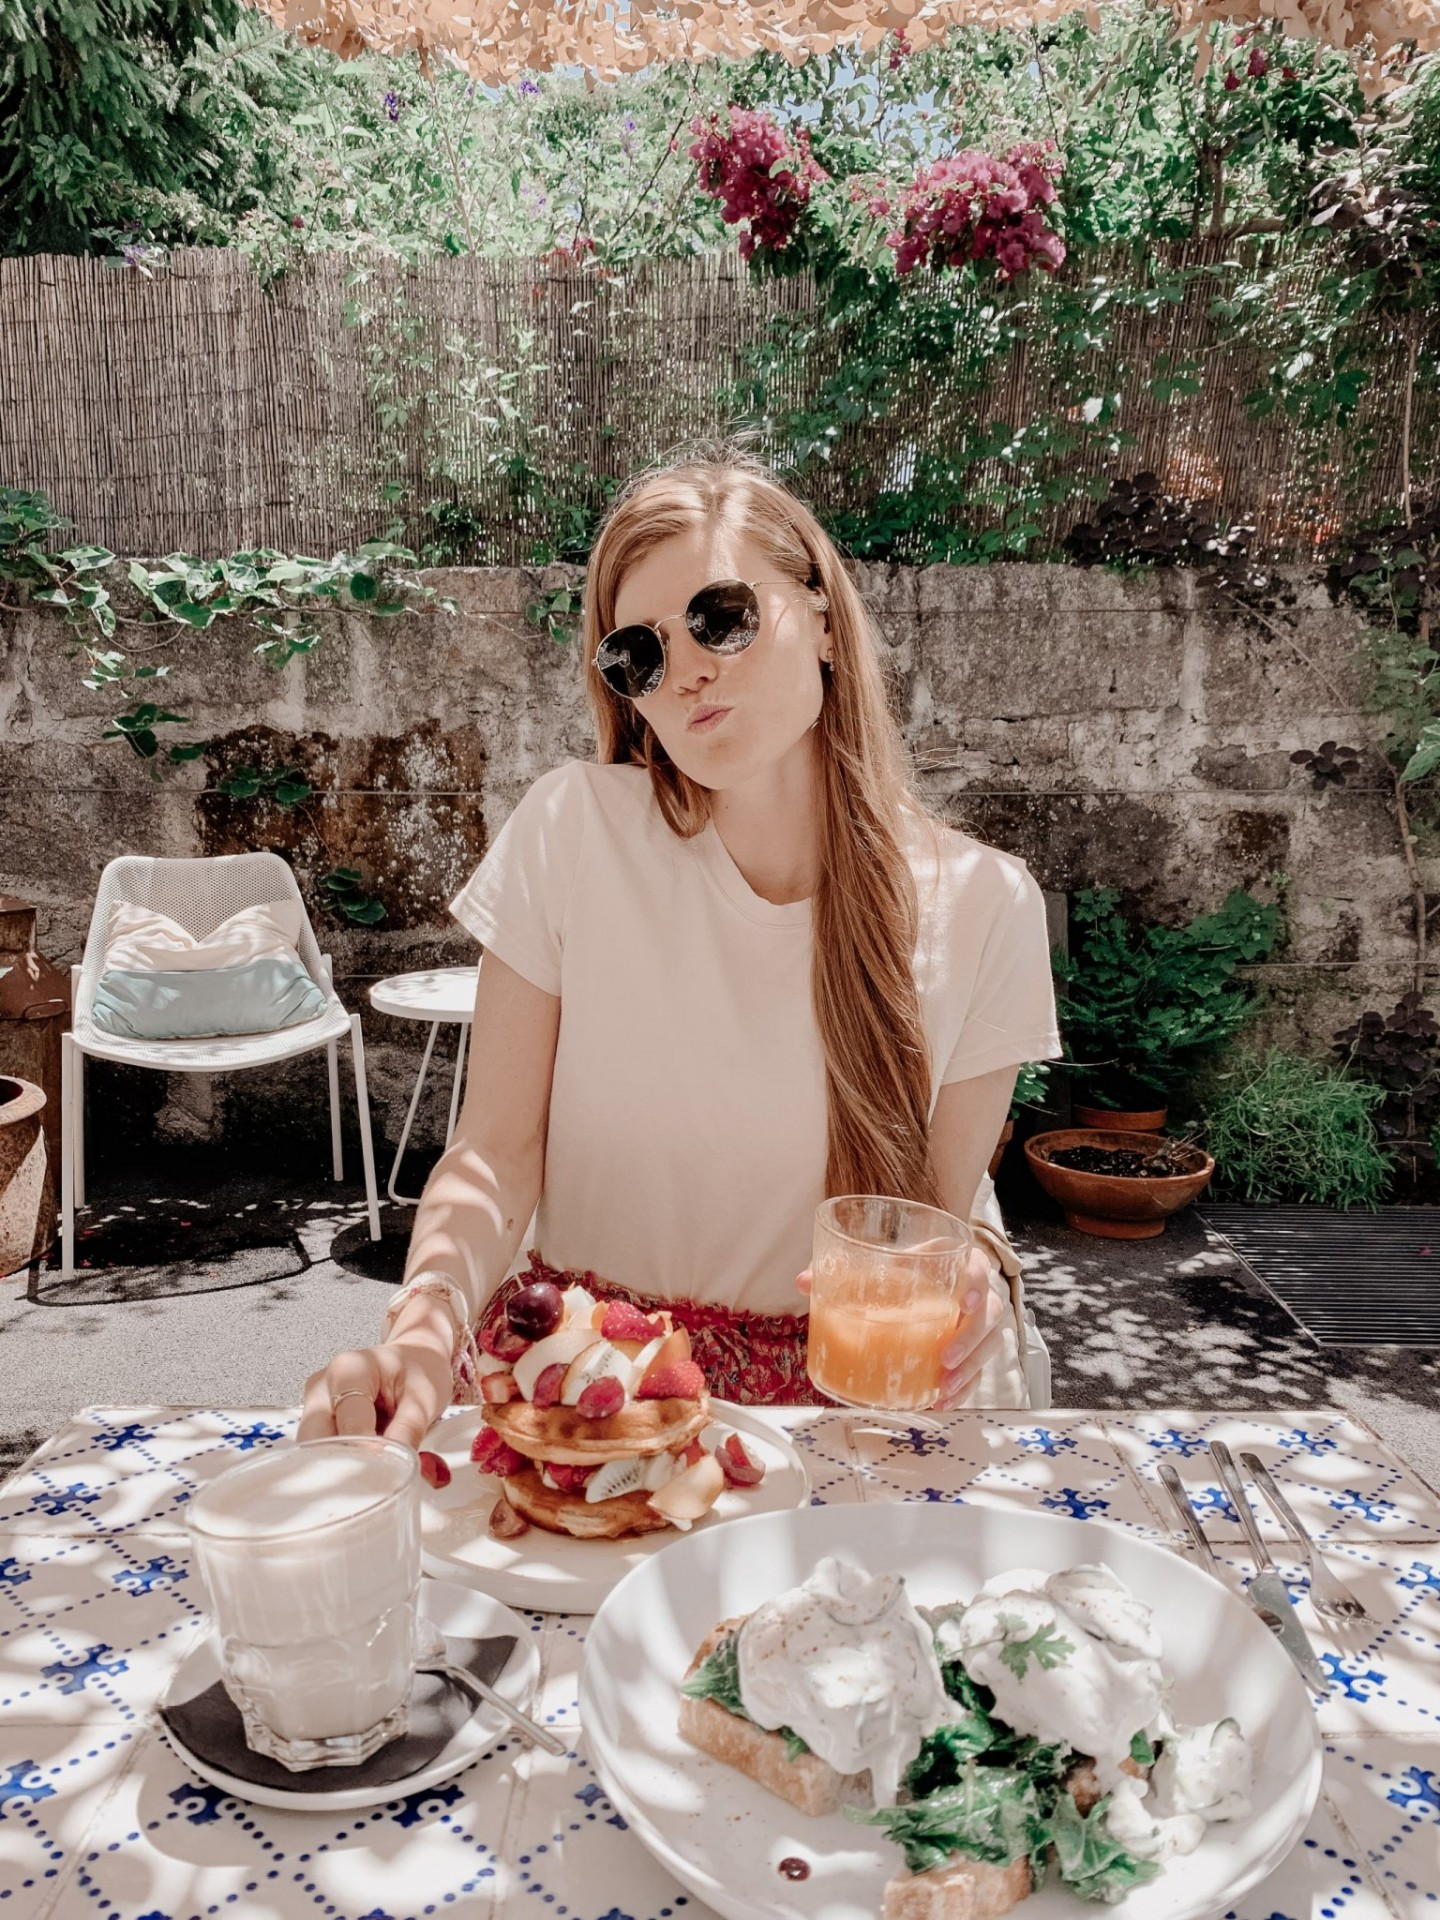 Lifestyle blogger Mollie Moore shares a Porto travel guide   A Porto Portugal Travel Guide by popular Great Britain international travel blogger, Mollie Moore: image of a woman sitting at a blue and white tile table and eating waffles with cream and berries.